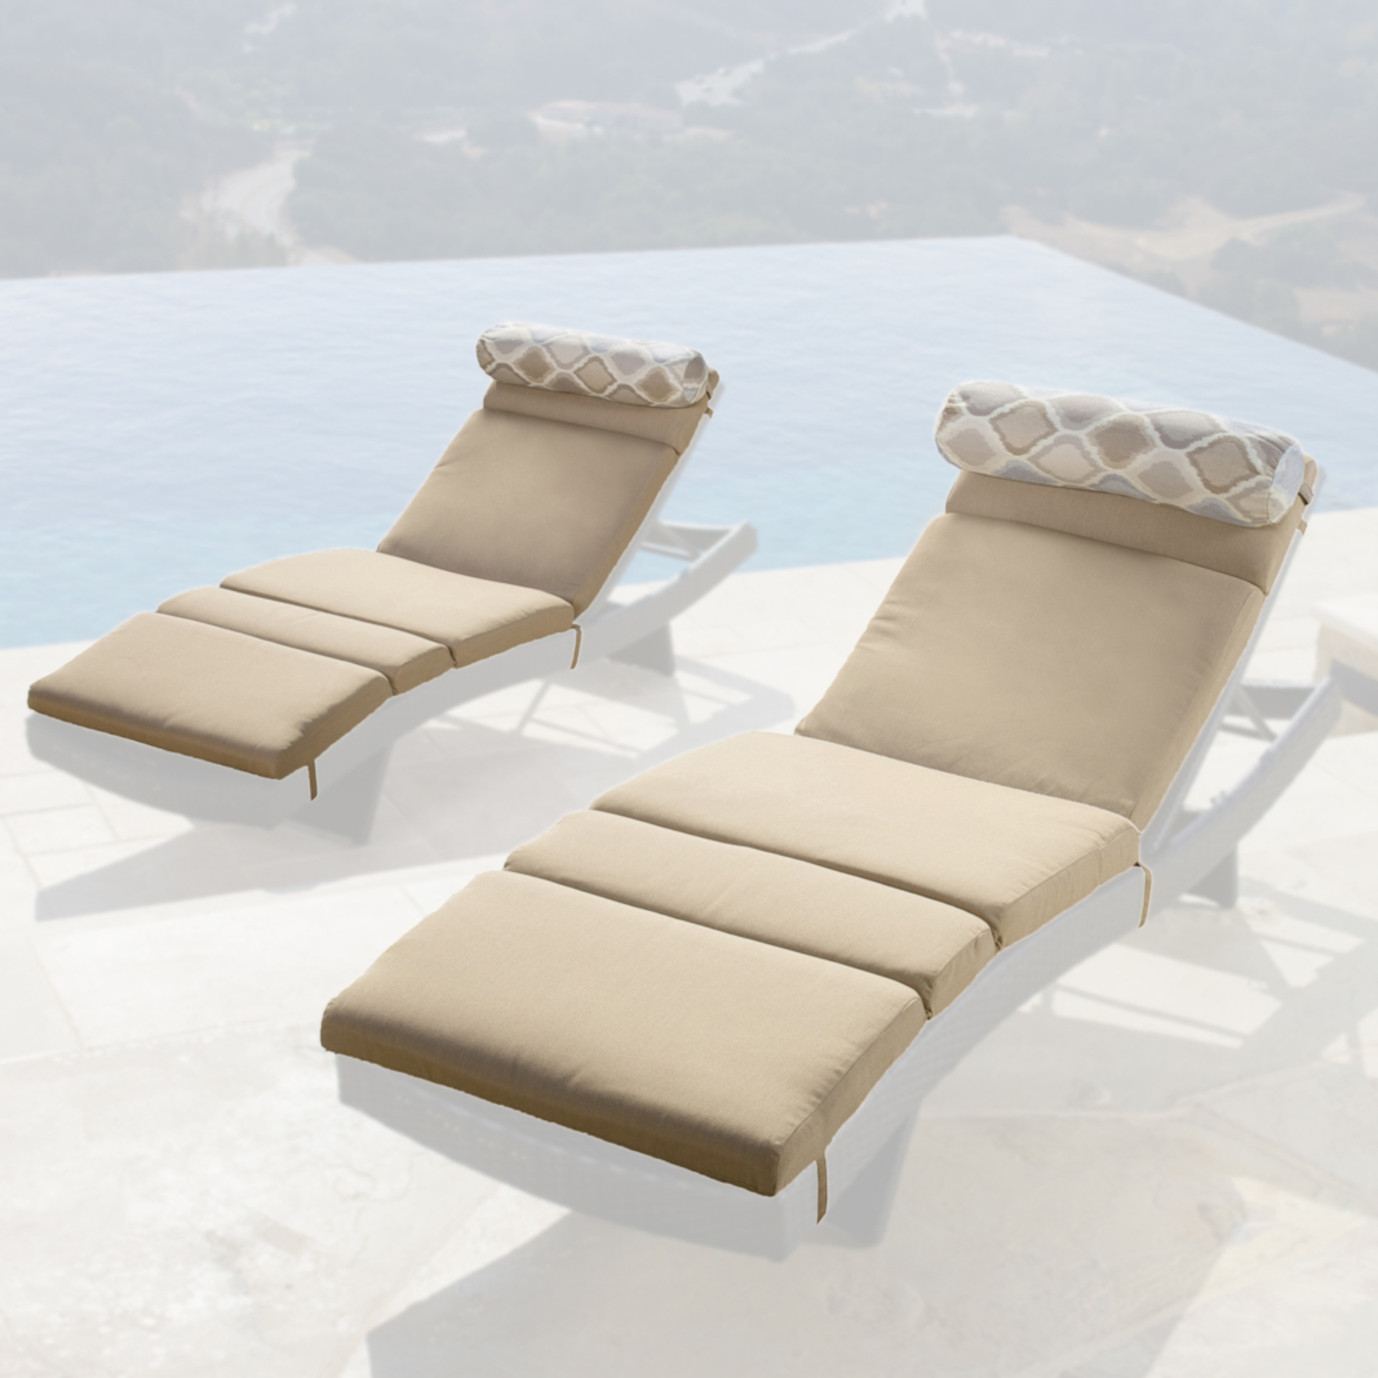 Portofino™ Comfort 2pk Lounger Cushions - Heather Beige